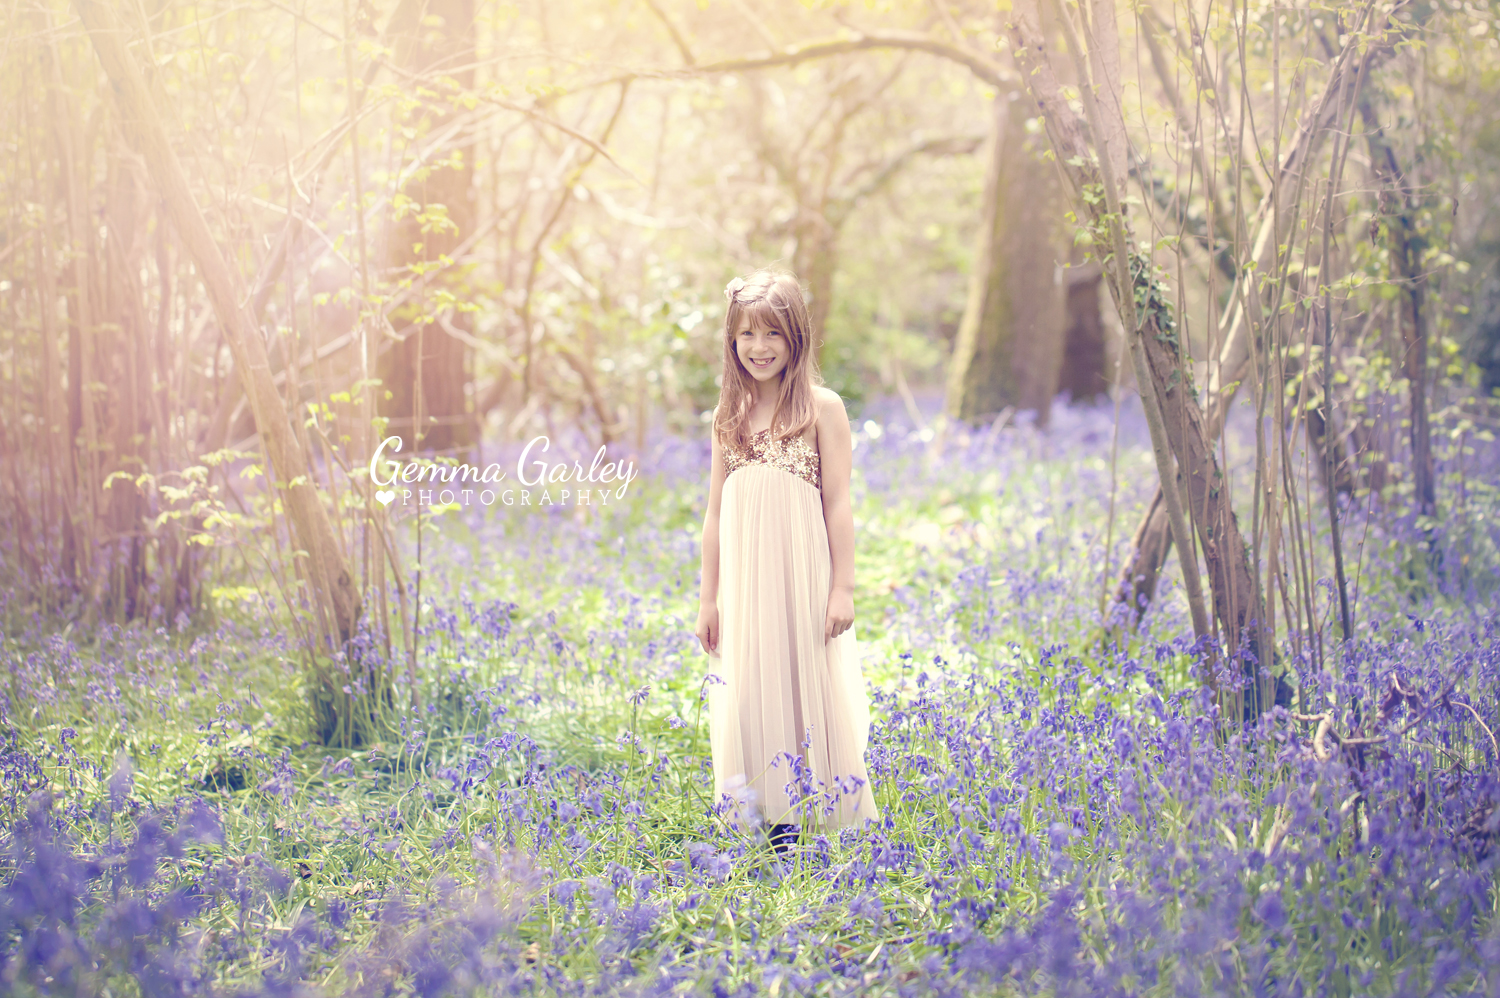 family photography out door portraits bourneouth dorset gemma garley.jpg